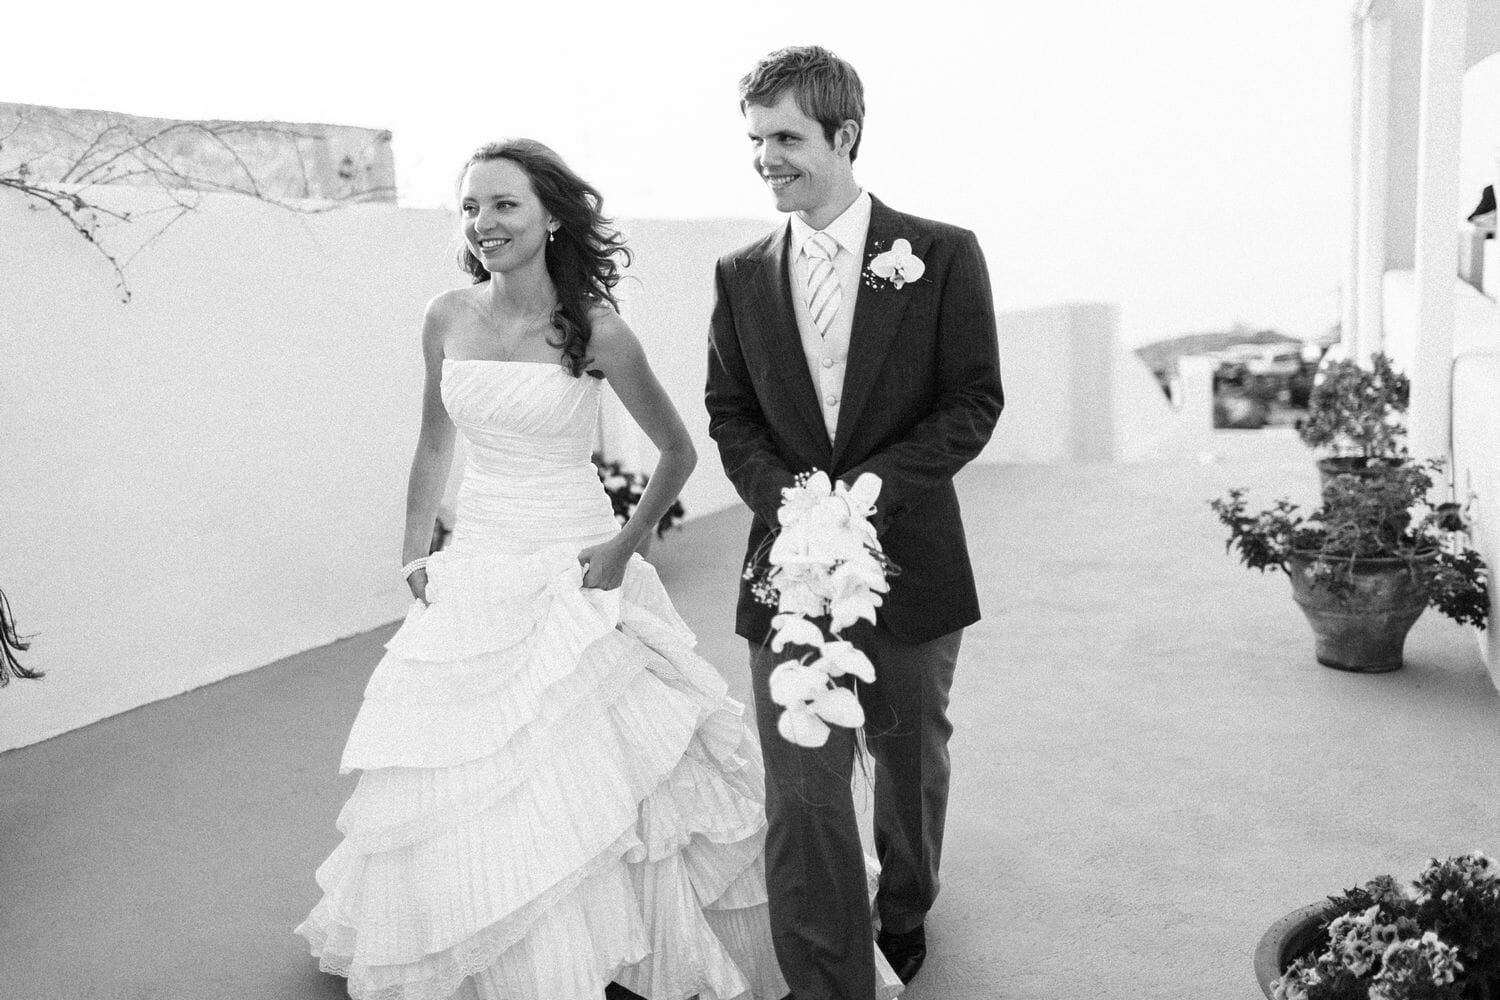 wedding-santorini-greece-anna-andreas-177